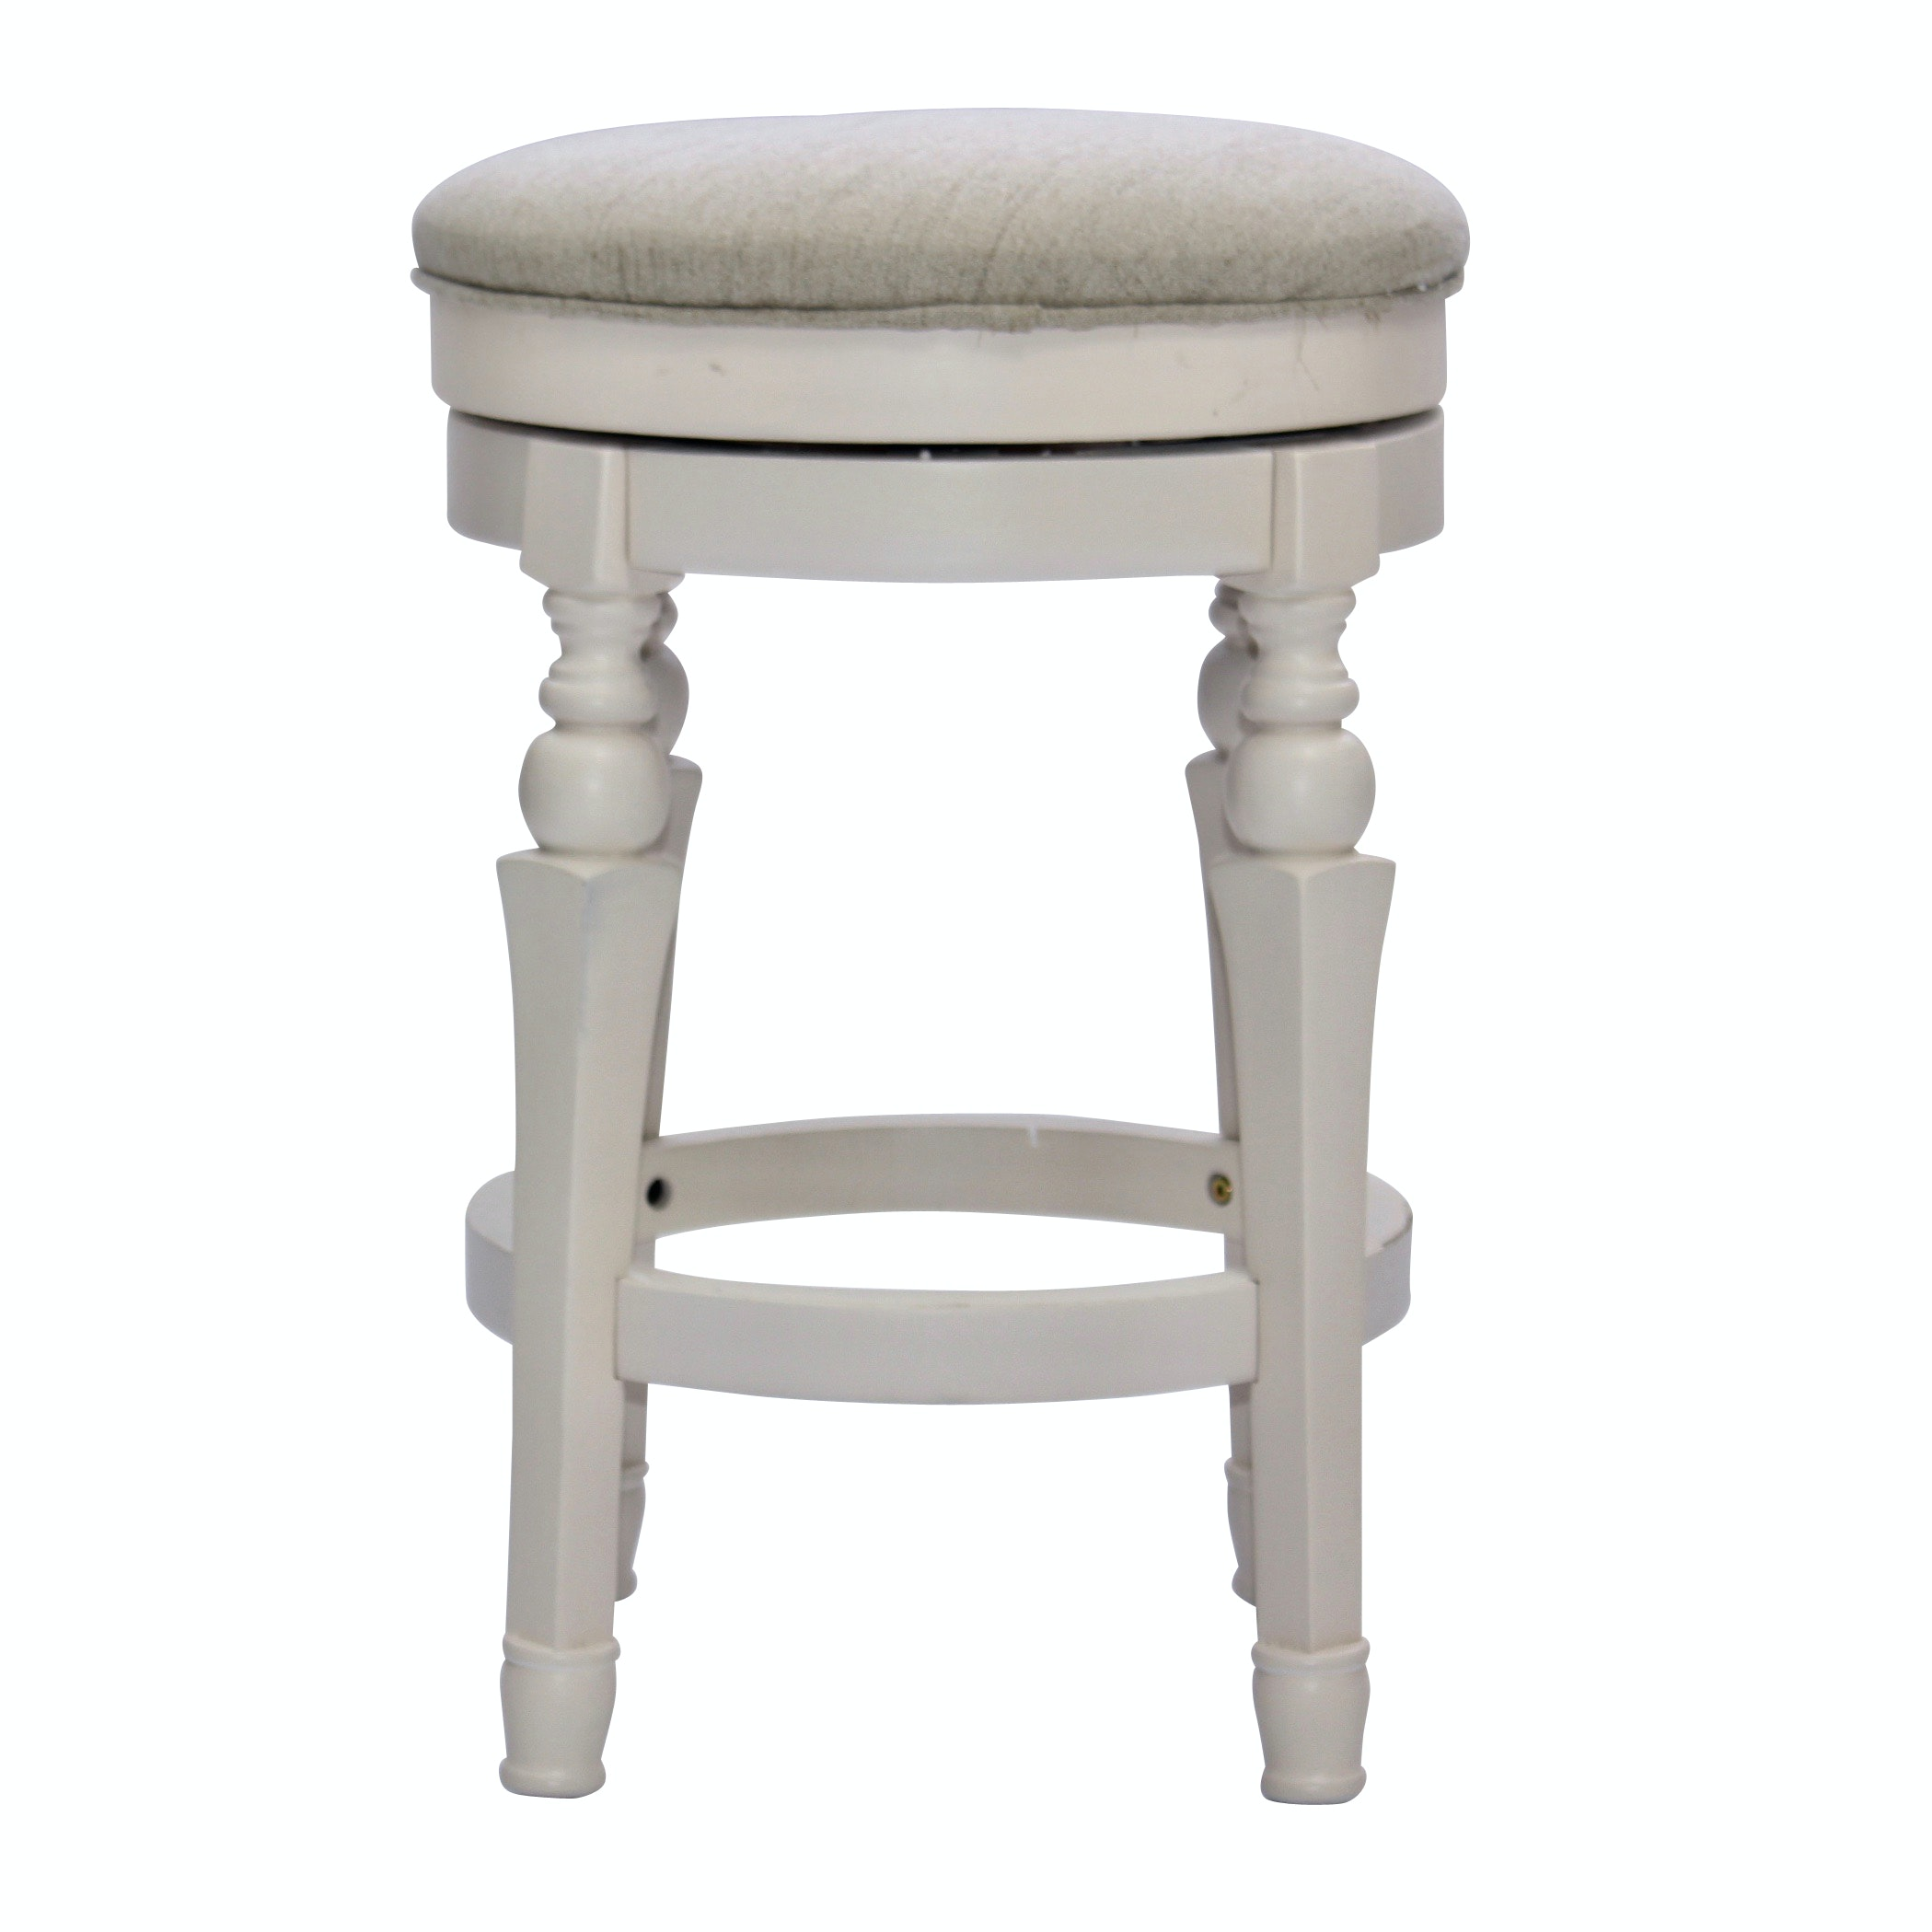 Upholstered Swivel Vanity Stool, Contemporary